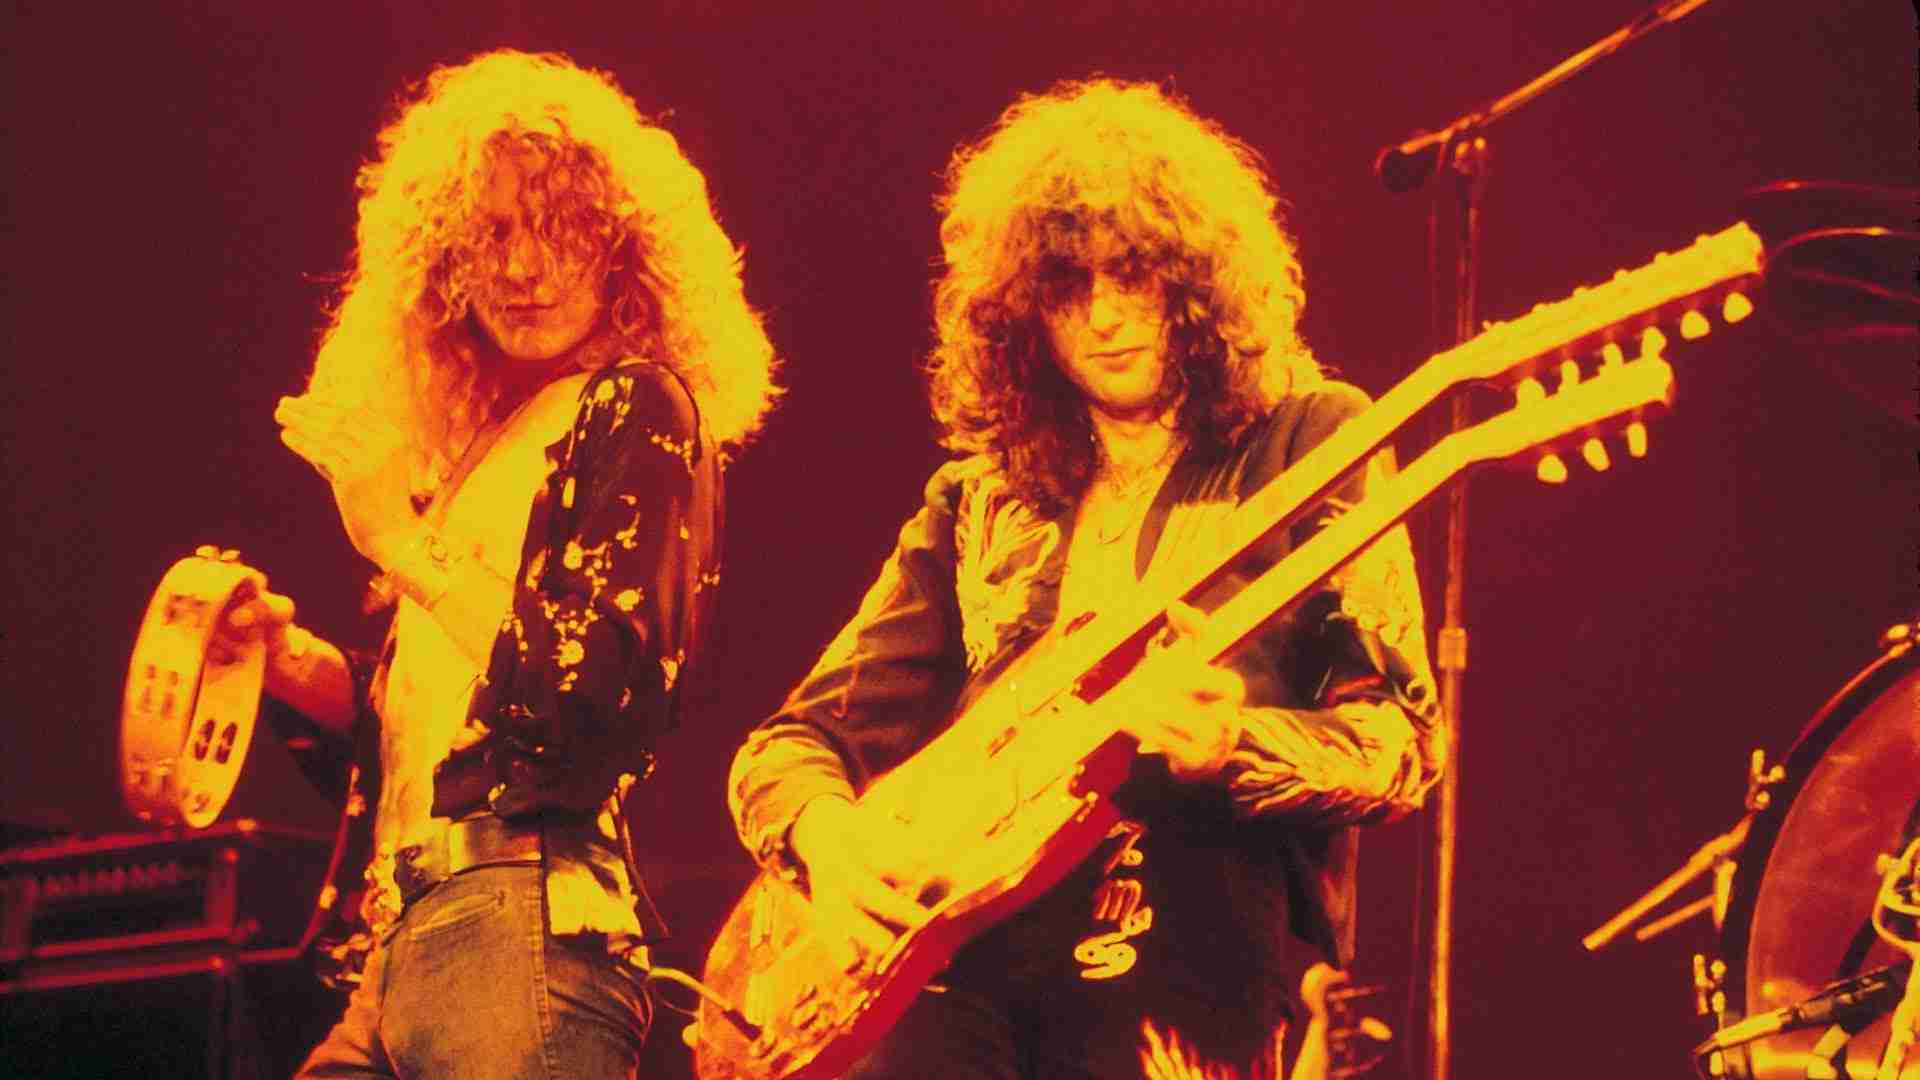 Led Zeppelin - Immigrant Song (Live Video) - YouTube